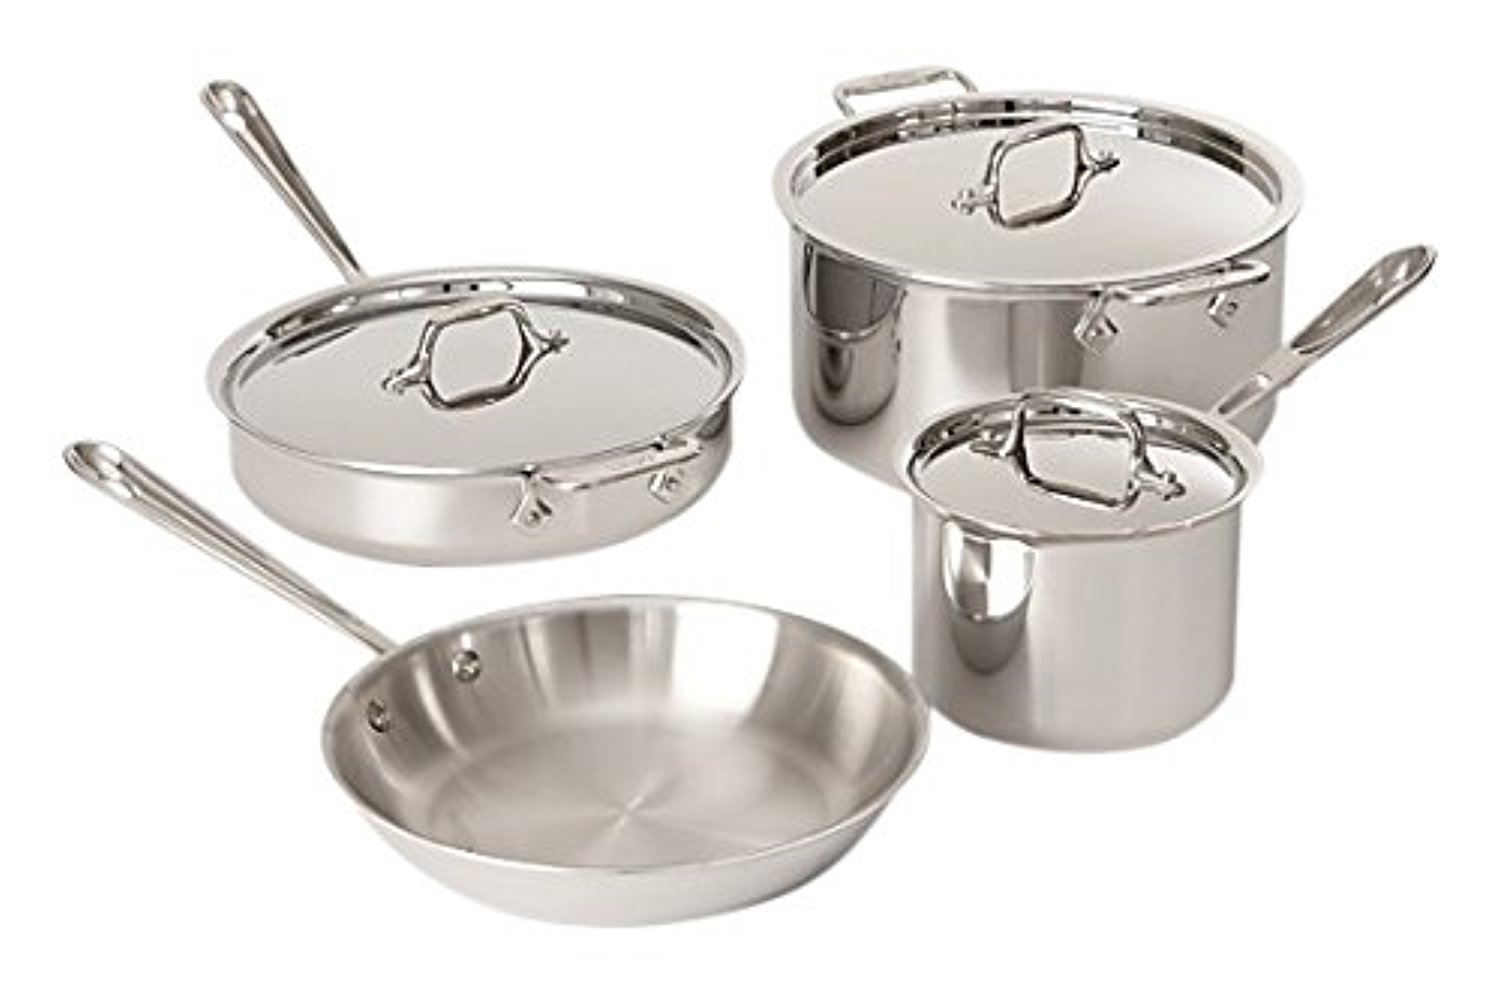 All-Clad Tri-Ply Stainless Steel 7 Piece Cookware Set by All-Clad